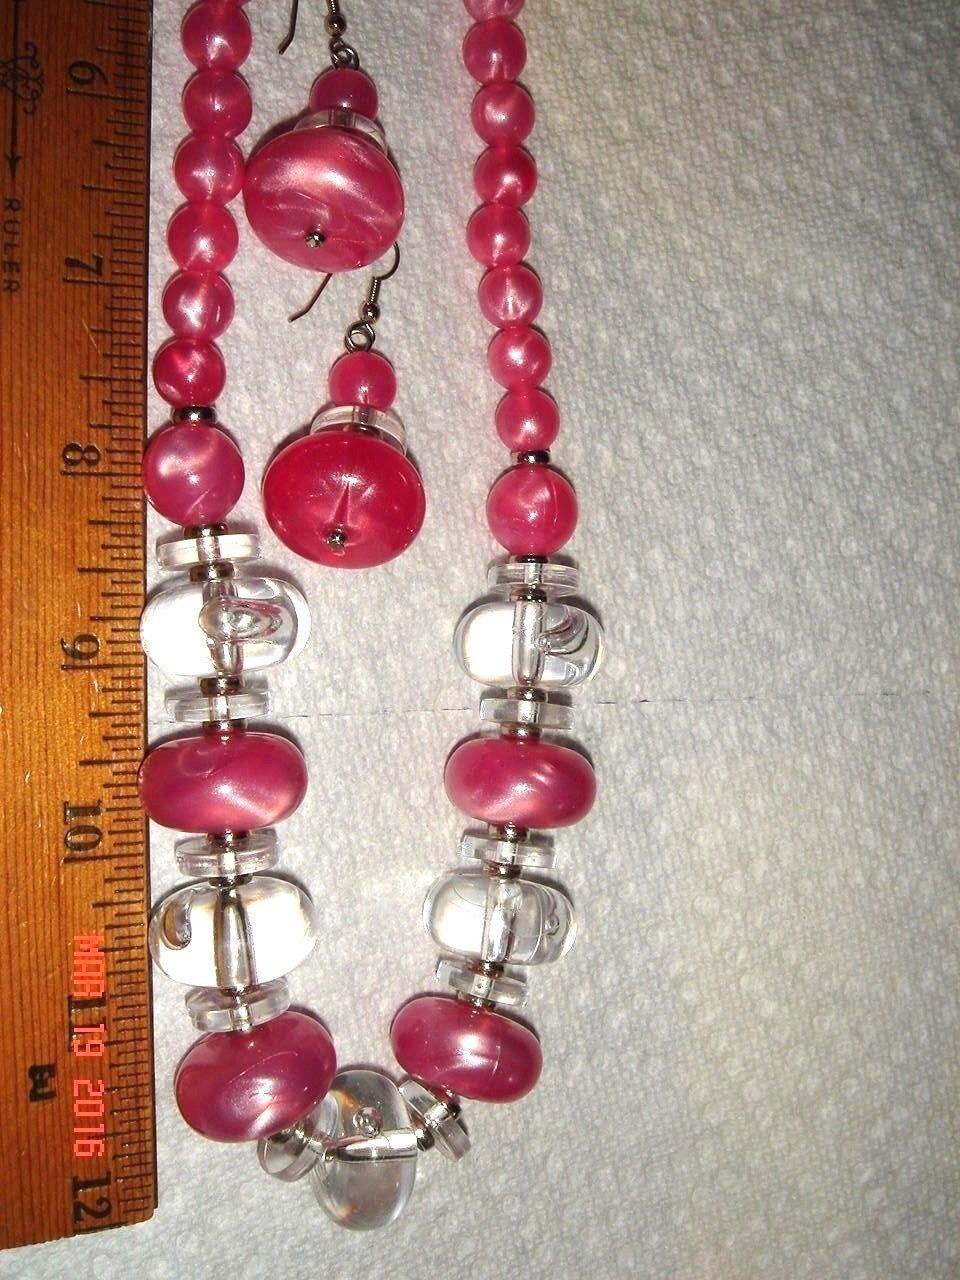 VTG ATOMIC PINK MOONGLOW LUCITE NECKLACE COIL BRACELET DANGLE DROP EARRING LOT 3